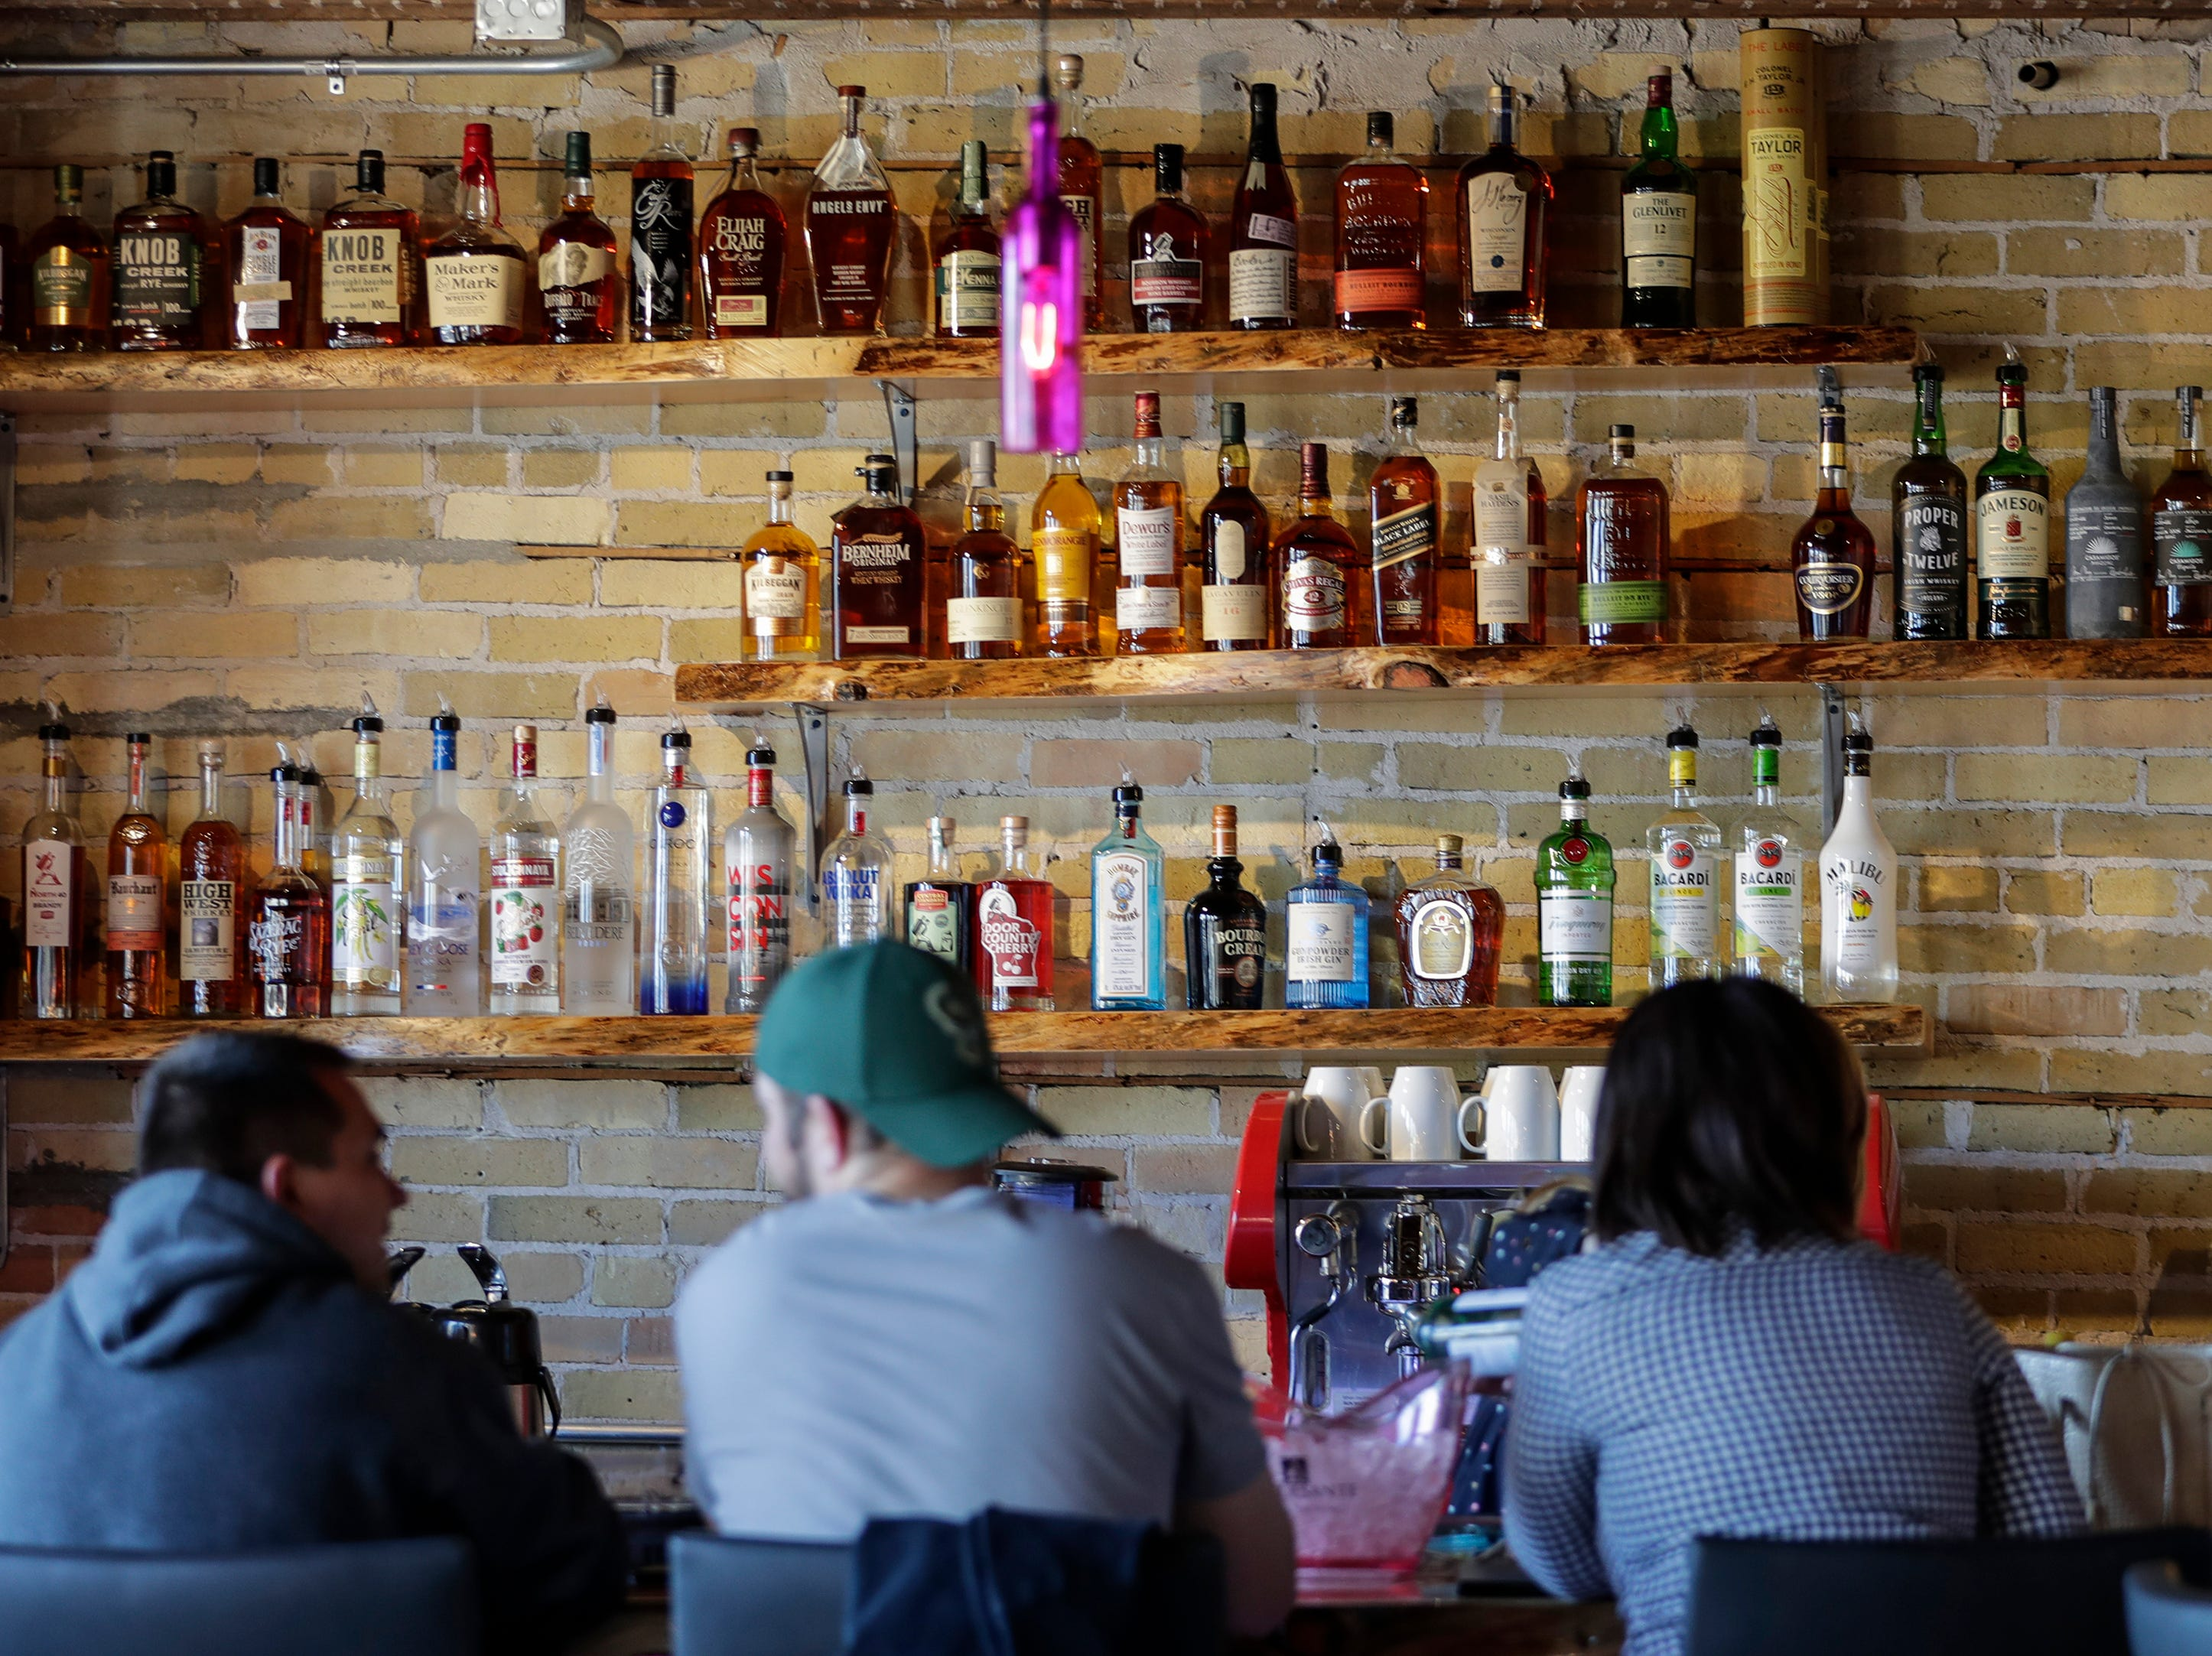 Liquor offerings on display behind the bar at the Waterfront Wine Bar Saturday, May 4, 2019, in Manitowoc, Wis. Joshua Clark/USA TODAY NETWORK-Wisconsin